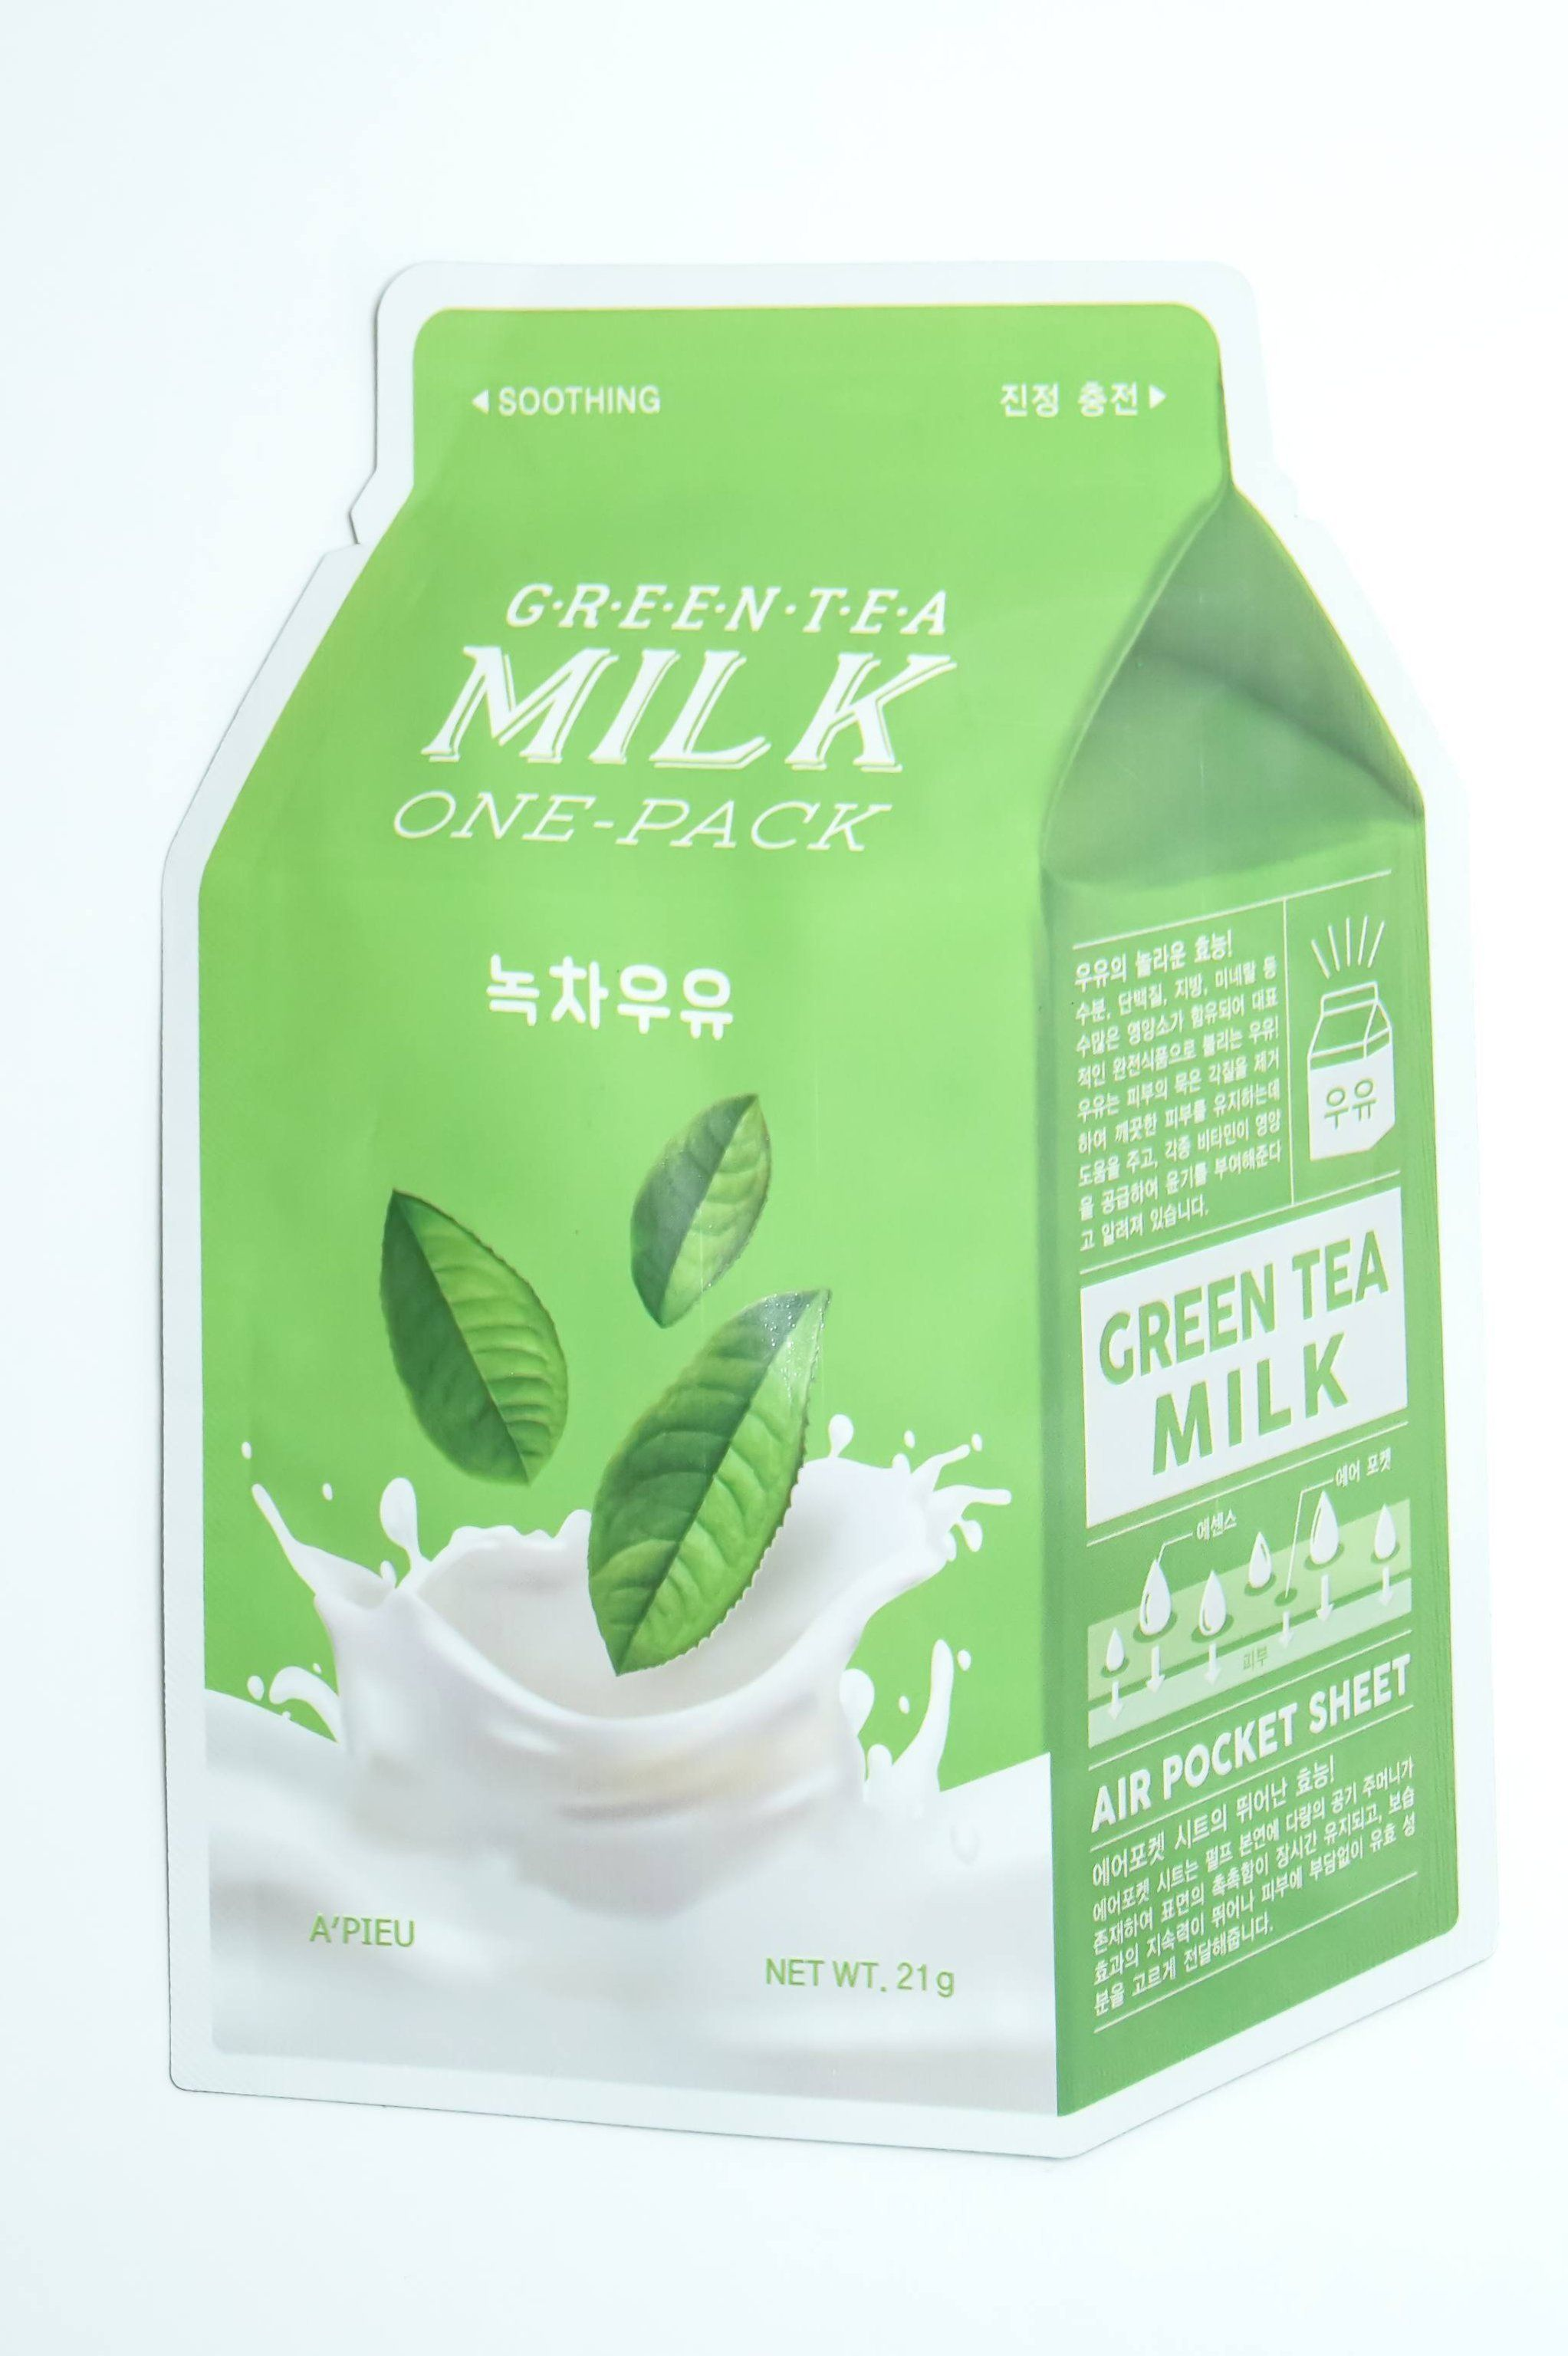 240df21da170 Milk One Pack - Green Tea (Soothing) | Bodycare, makeup, nails ...